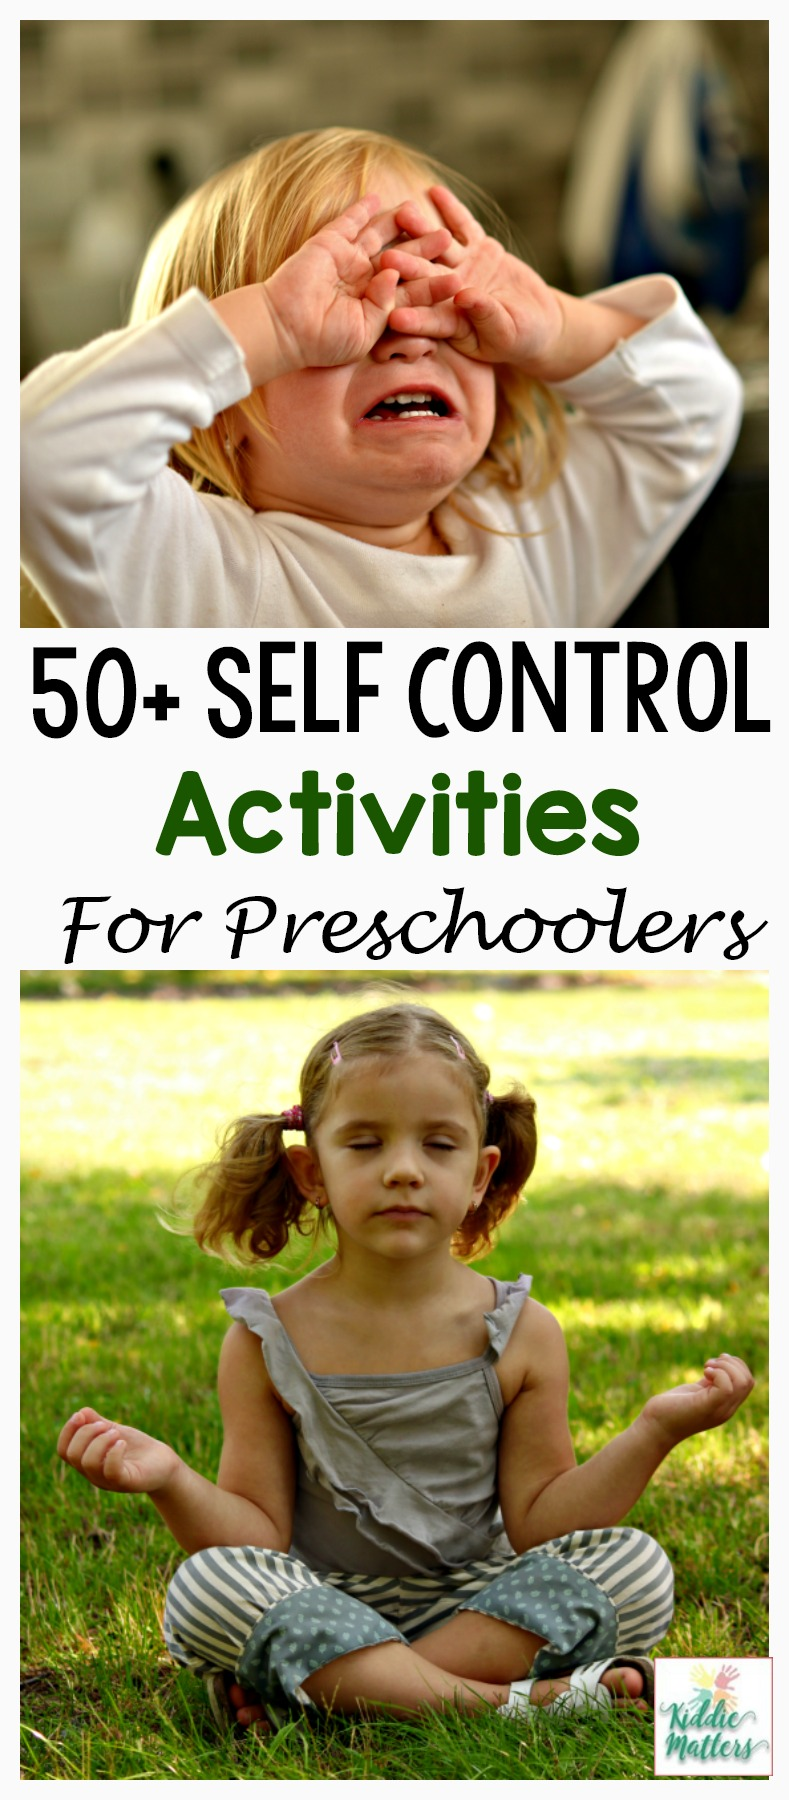 Teach preschool children how to manage big emotions with these self control activities. Many preschoolers have a hard time managing big emotions. However, once they learn the right tools to deal with their feelings, you'll see a decrease in temper tantrums, whining, and acting out behaviors.